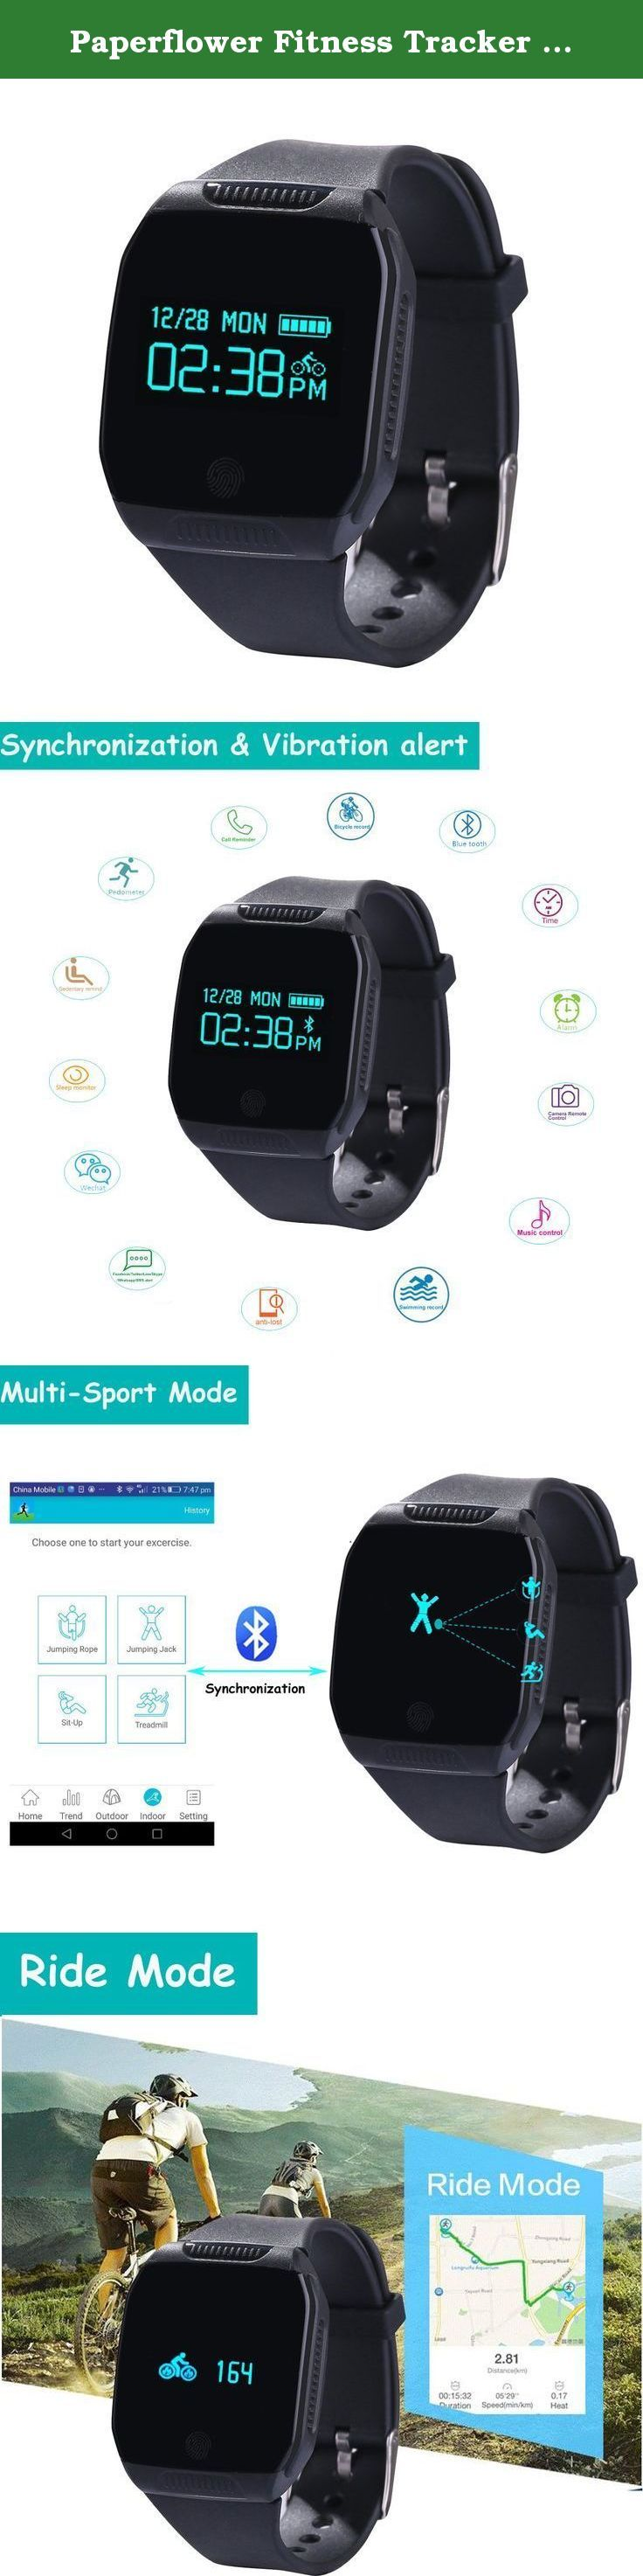 Paperflower Fitness Tracker Wearable Waterproof Smartwatch Touch key Pedometer Smart Bracelet with Multifunction for Iphone 5/5s/6/6 plus Samsung S2/S3/S4 Smart Phone (Black). Welcome to Paperflower Store. If you have any question,please feel free to contact us,we will reply within 24 hours. We offer 30 days money back guarantee,if item defect or does not meet expectations PLEASE BE ASSURED TO PURCHASE! Specification: Product body size: 34x44x10mm Display: 0.96inch OLED display Wristband...